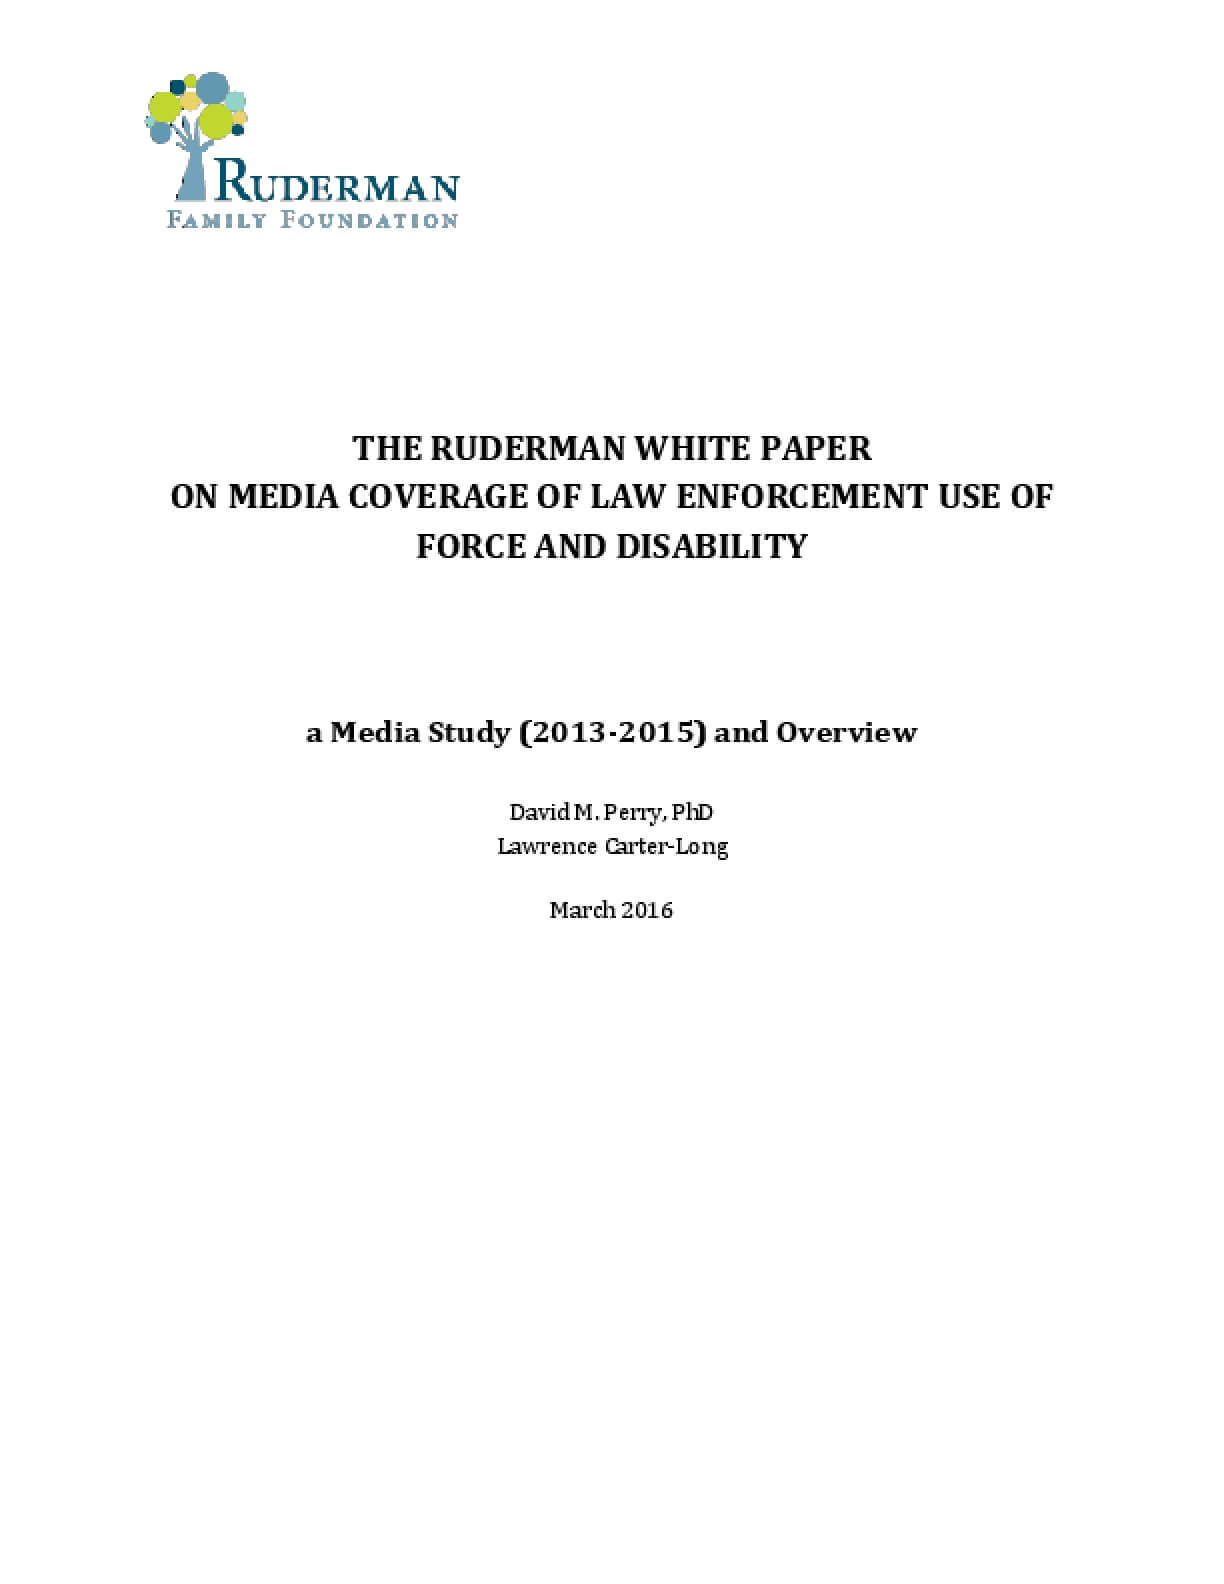 Media Coverage of Law Enforcement Use of Force and Disability